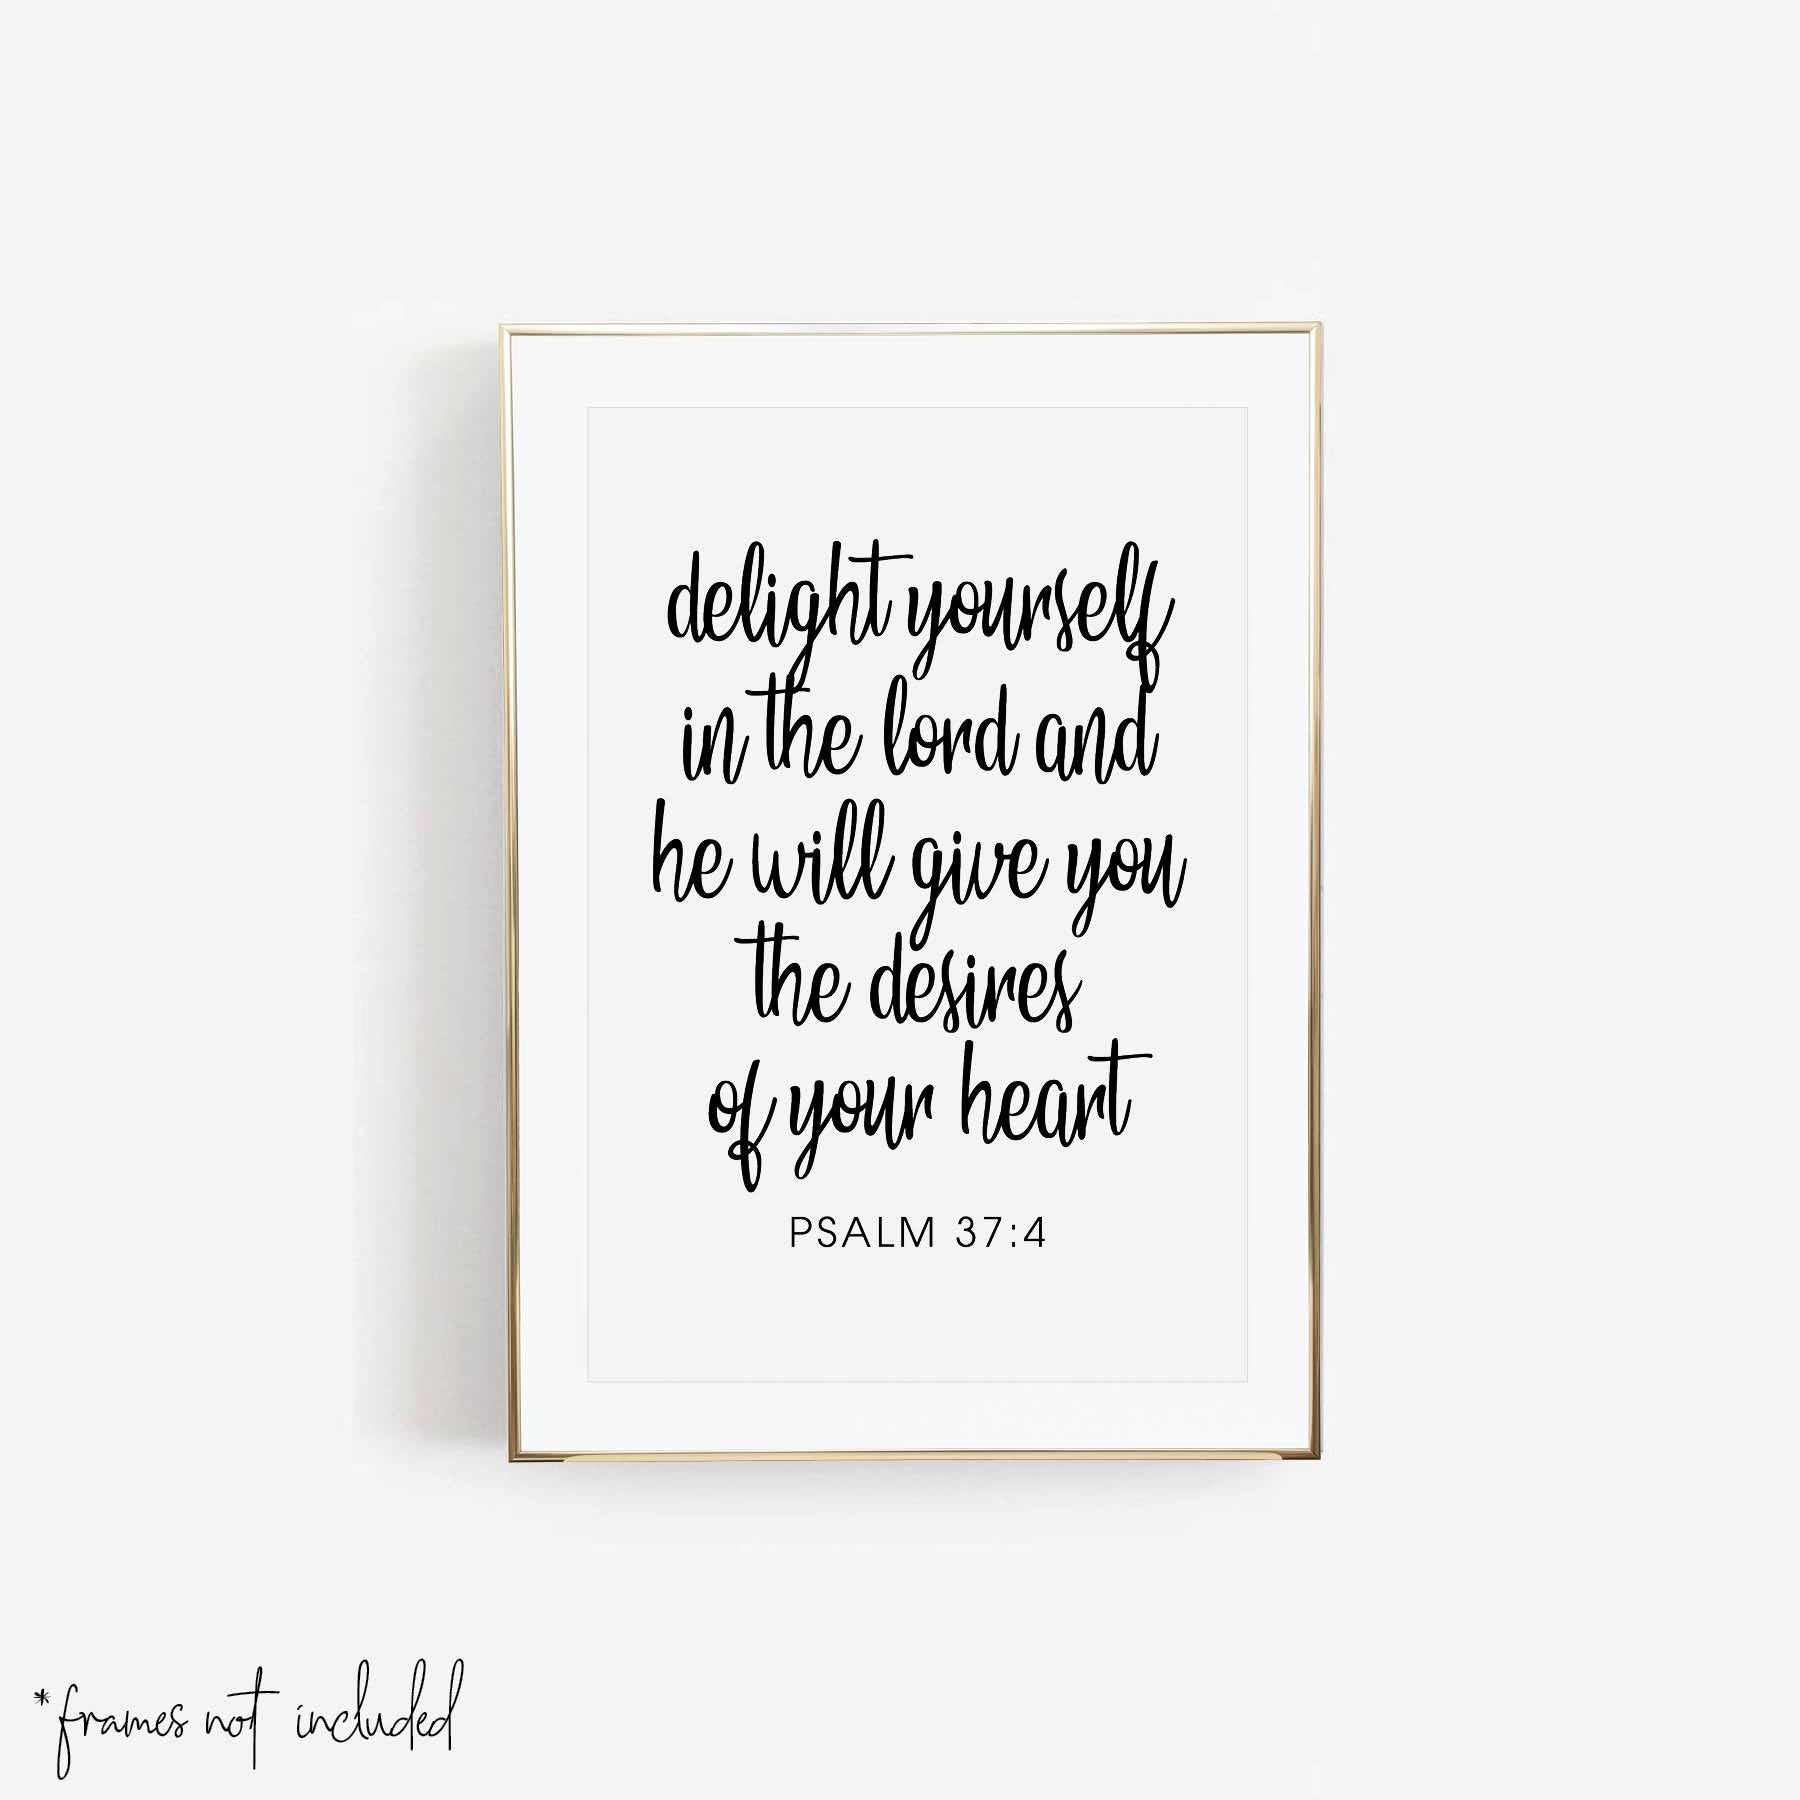 Delight Yourself In the Lord and He Will Give You the Desires of Your Heart. -Psalm 37:4 Print